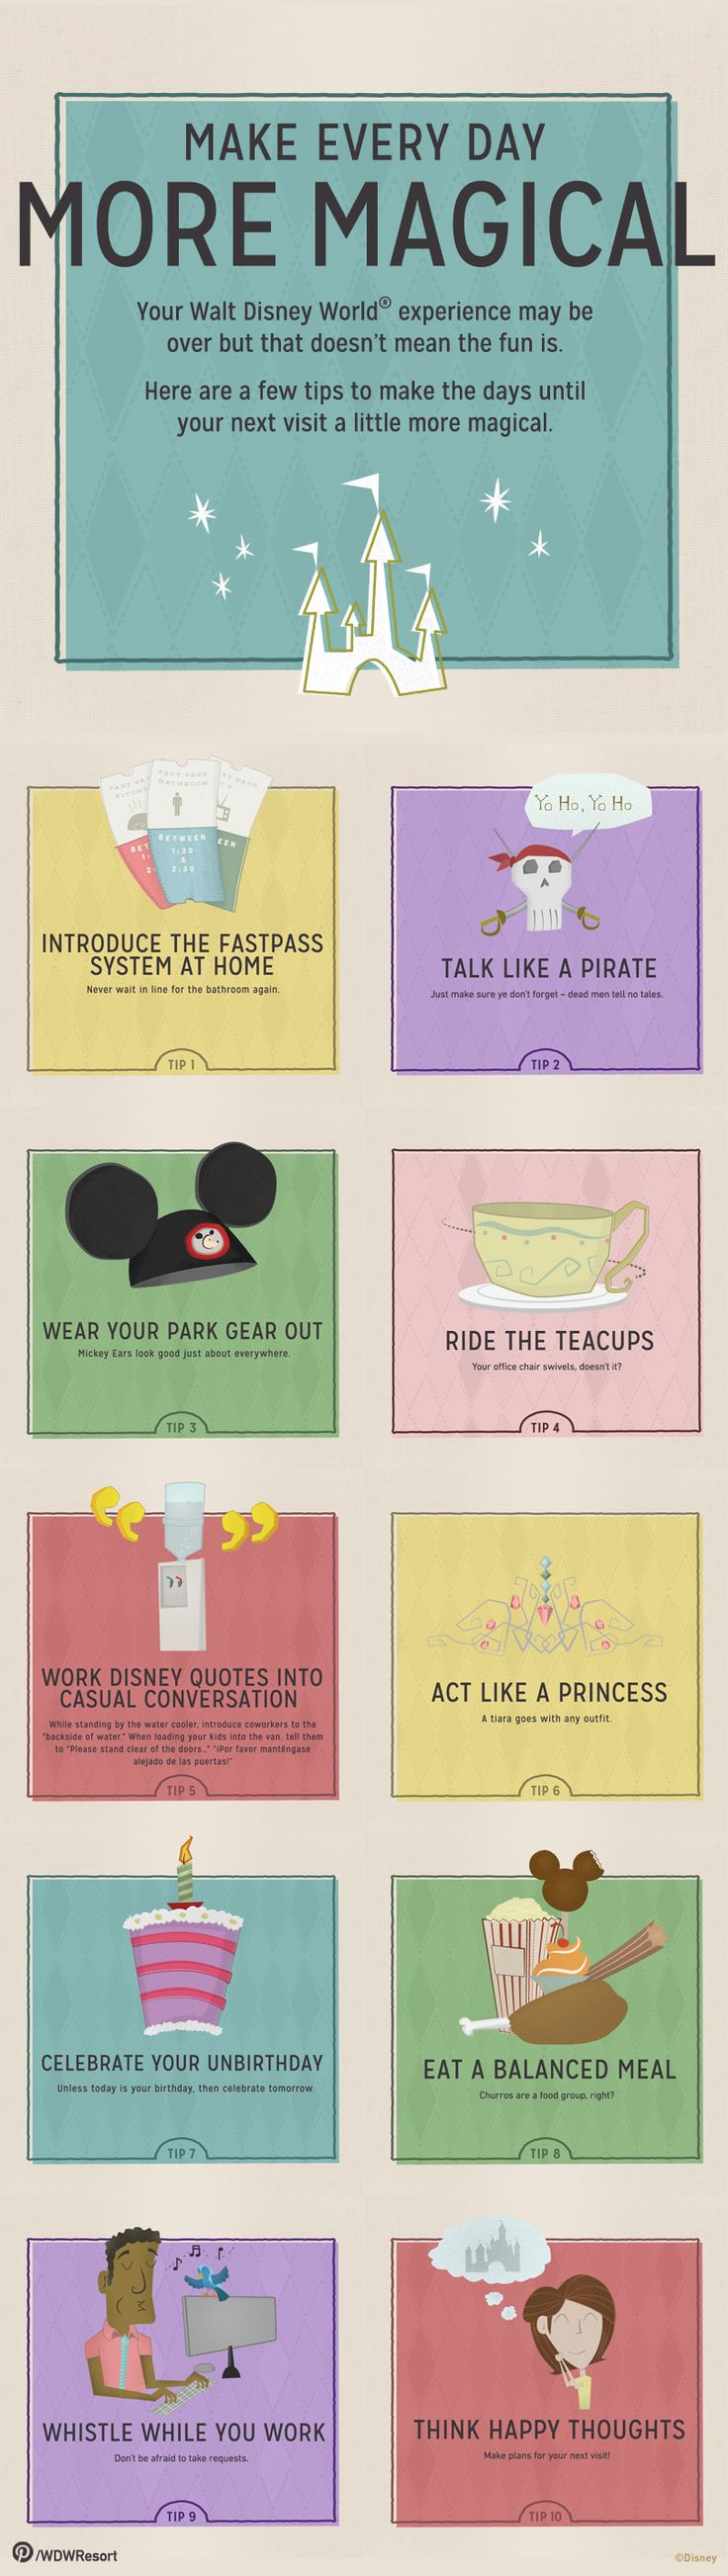 Your Walt Disney World experience may be over but that doesn't mean the fun is! #WaltDisneyWorld